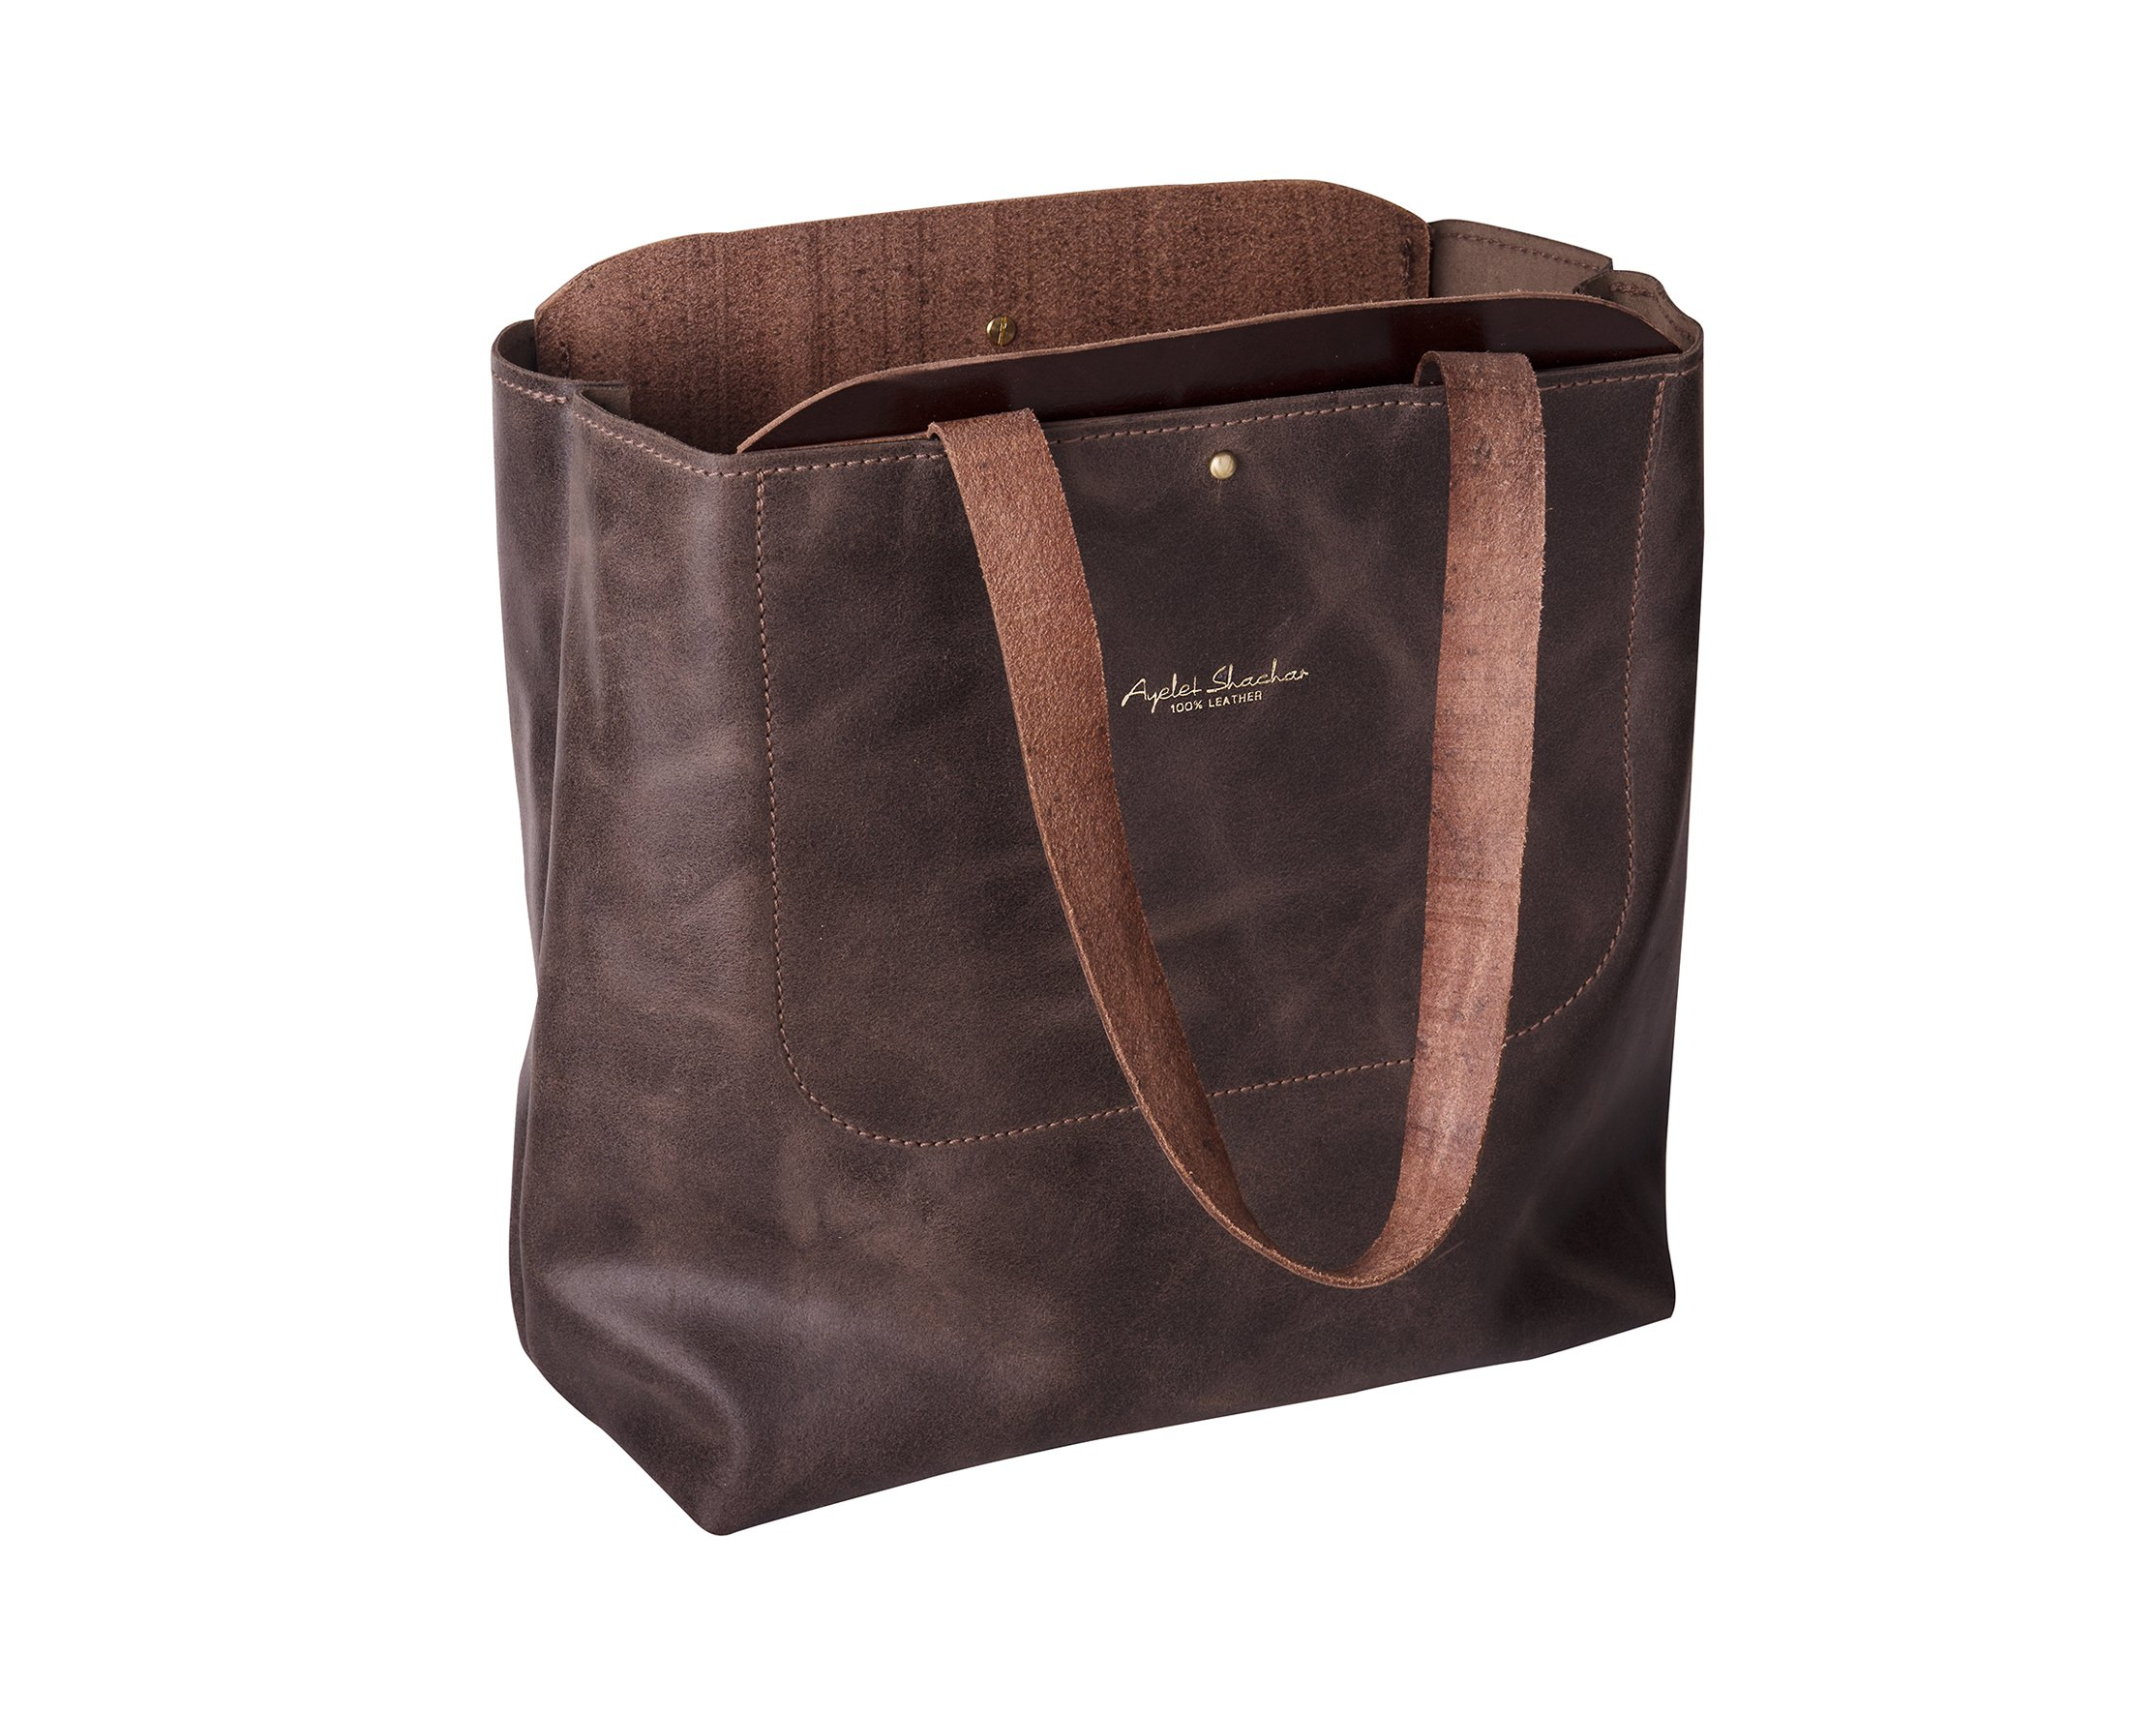 Women Leather Tote Bags - Brown Shoulder Bags - Everyday Large Carry All Bag - Tote Bag - Leather Handbag - Mac book Bag - Gifts For Her